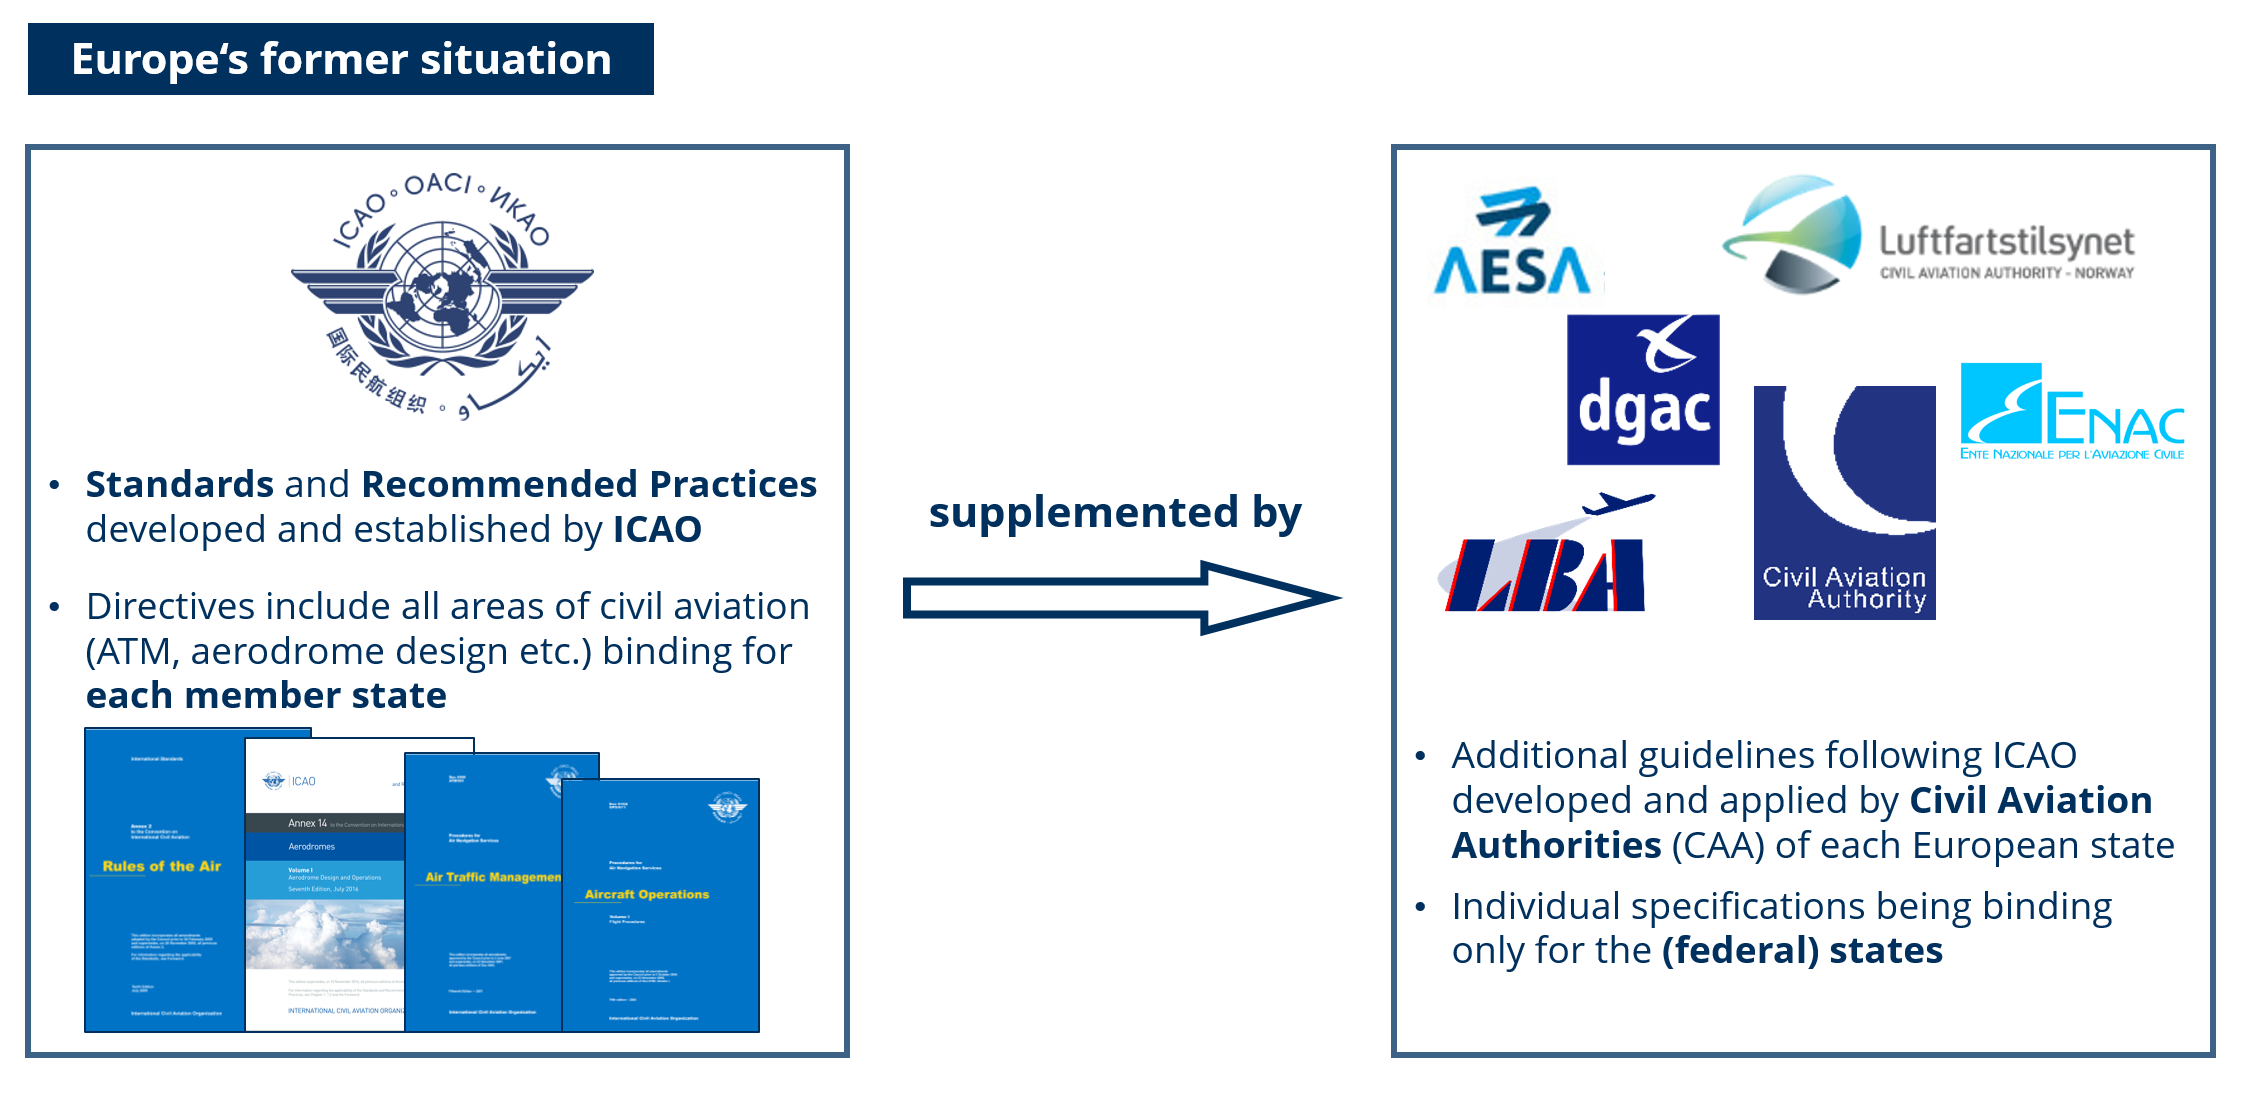 Previous relationship between ICAO regulations and national aviation authorities (© GfL mbH)